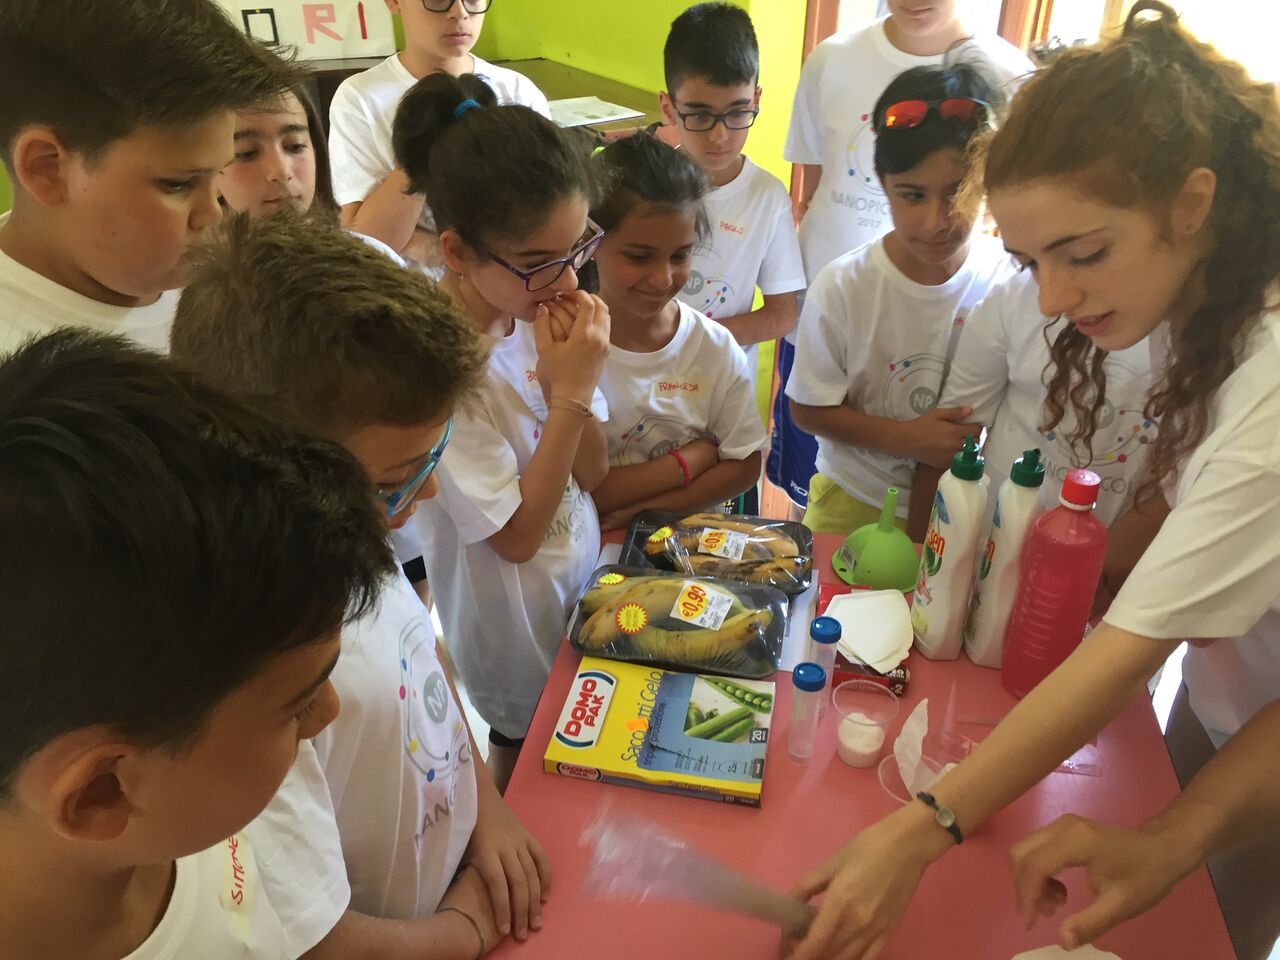 The town's NanoPiccola's participants learning about nanoscience with experiments and hands-on activities taught by trained students.